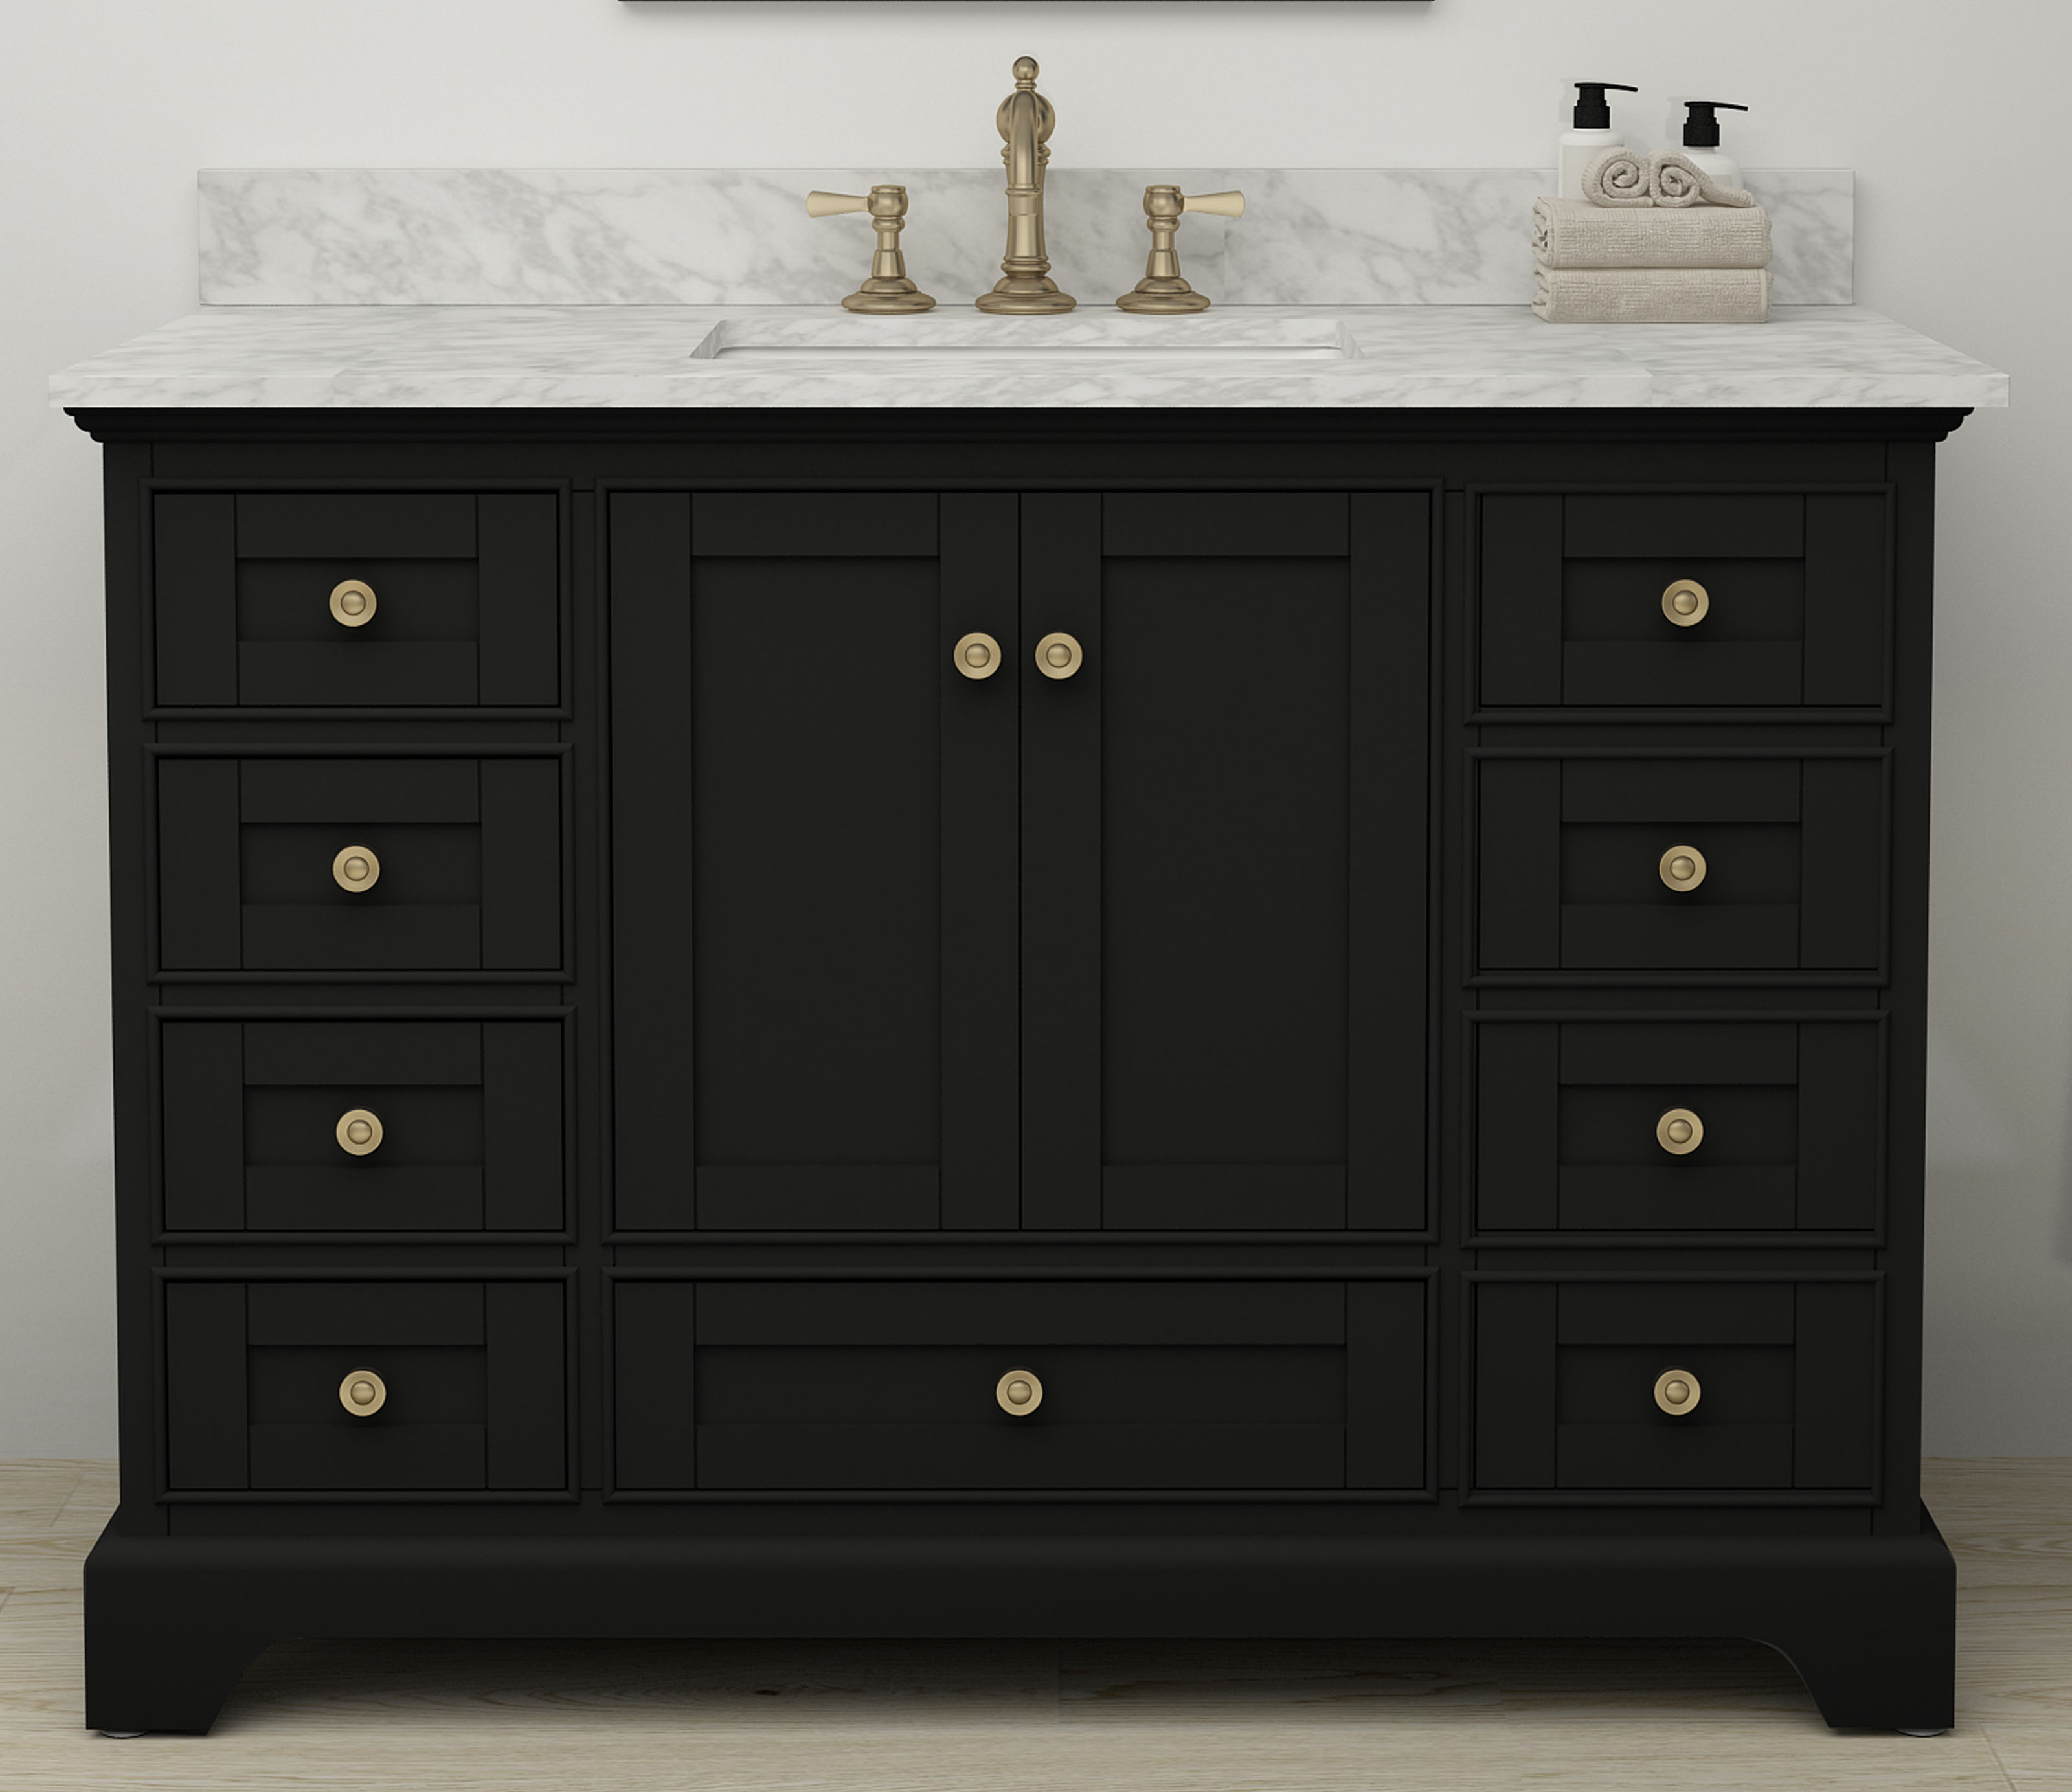 "48"" Bath Vanity Set in Black Onyx with Italian Carrara White Marble Vanity Top and White Undermount Basin with Gold Hardware with Mirror Option"